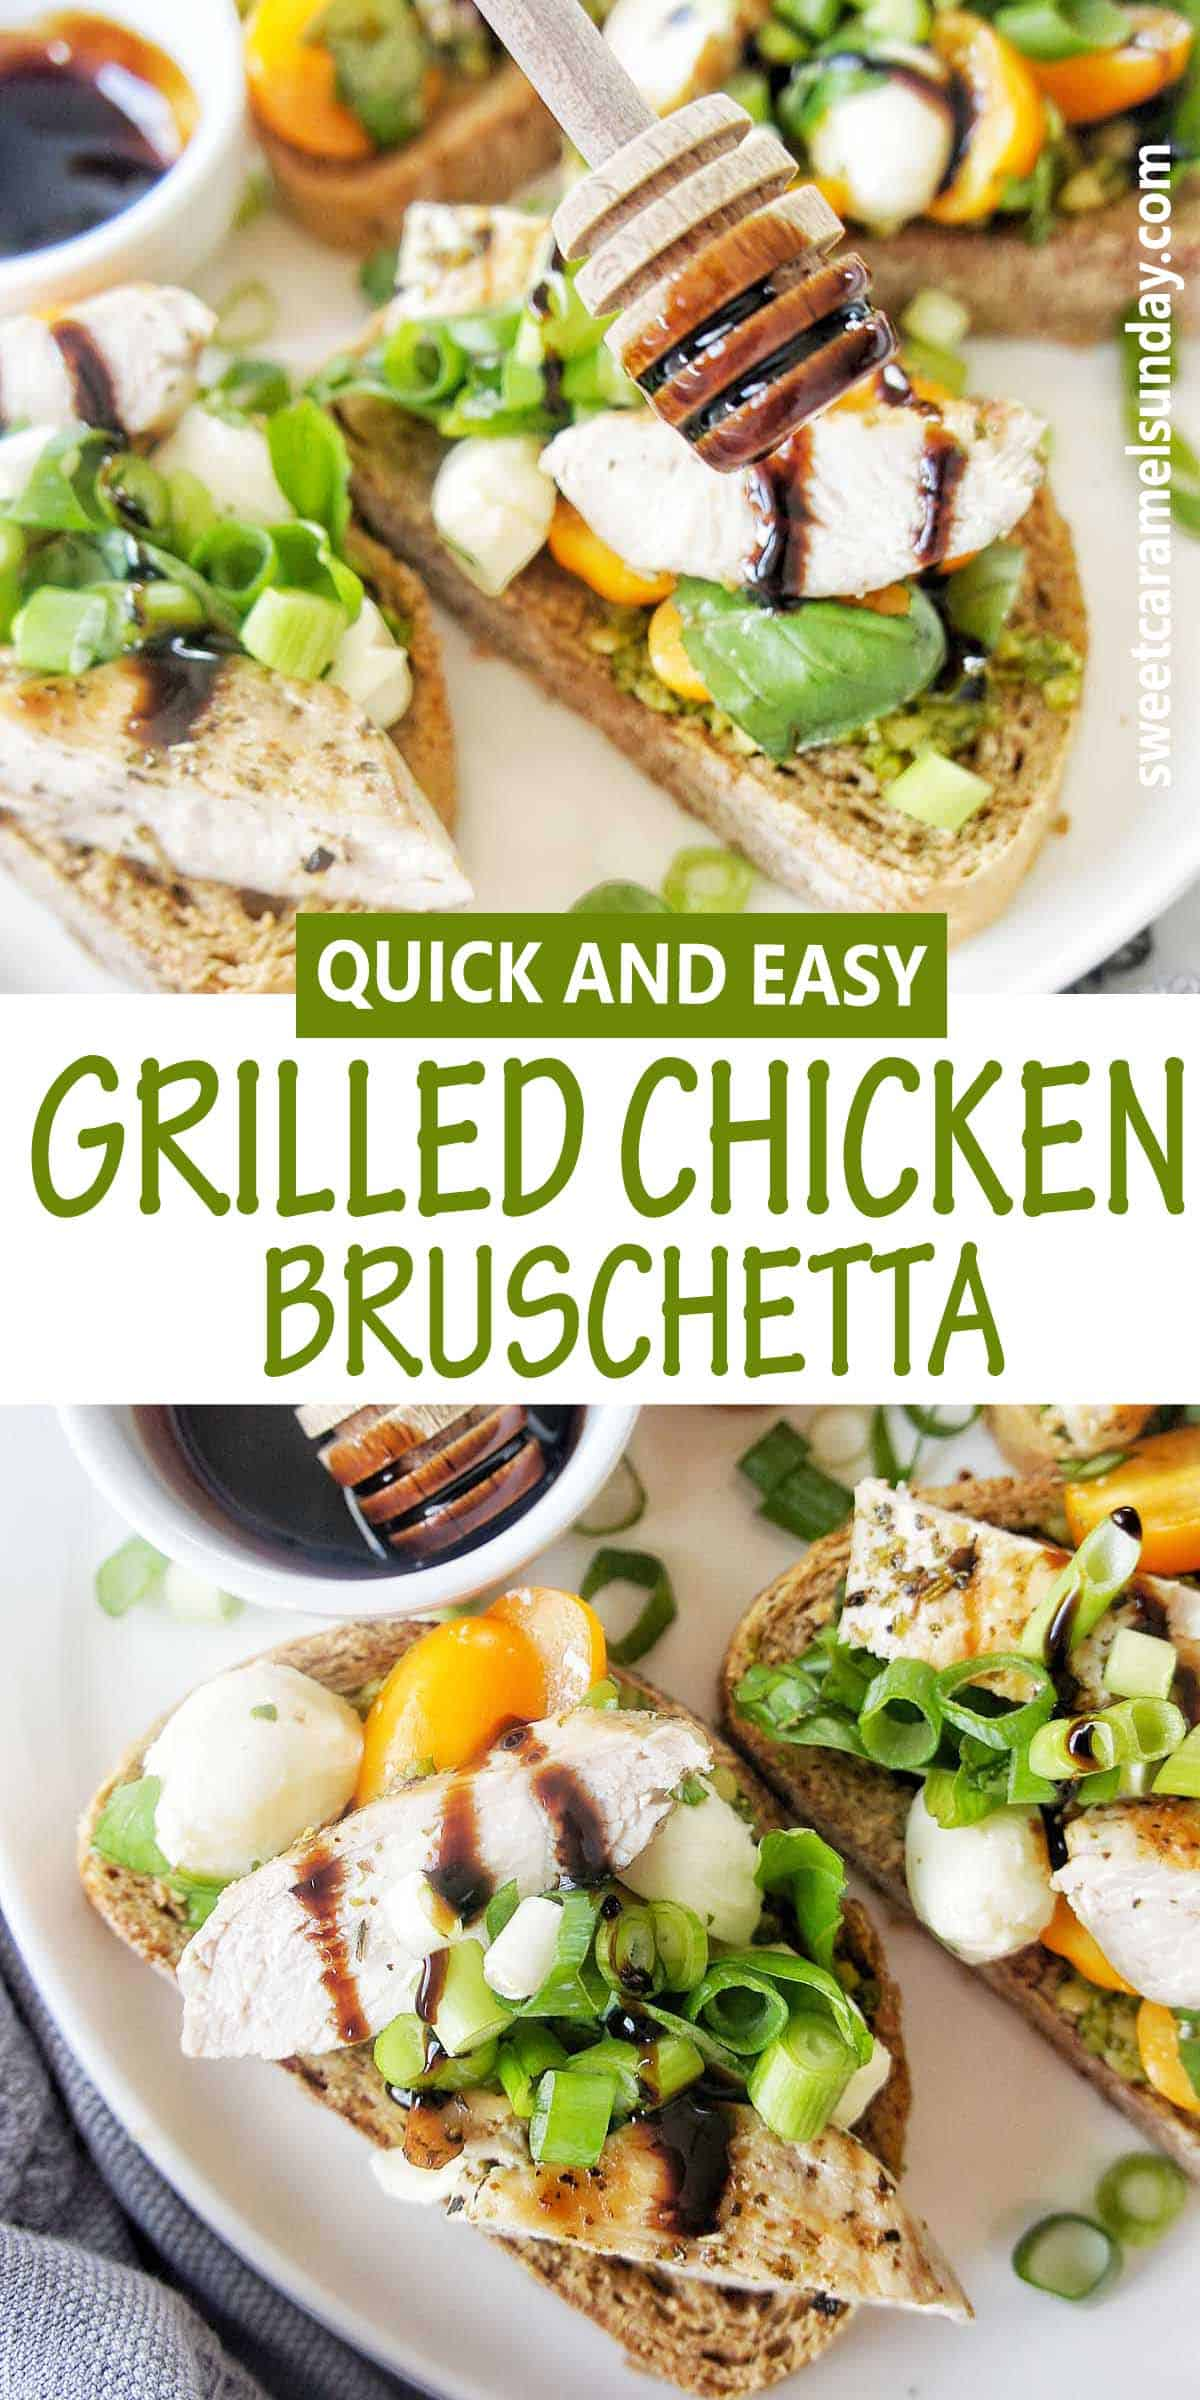 Grilled Chicken Bruschetta with text overlay